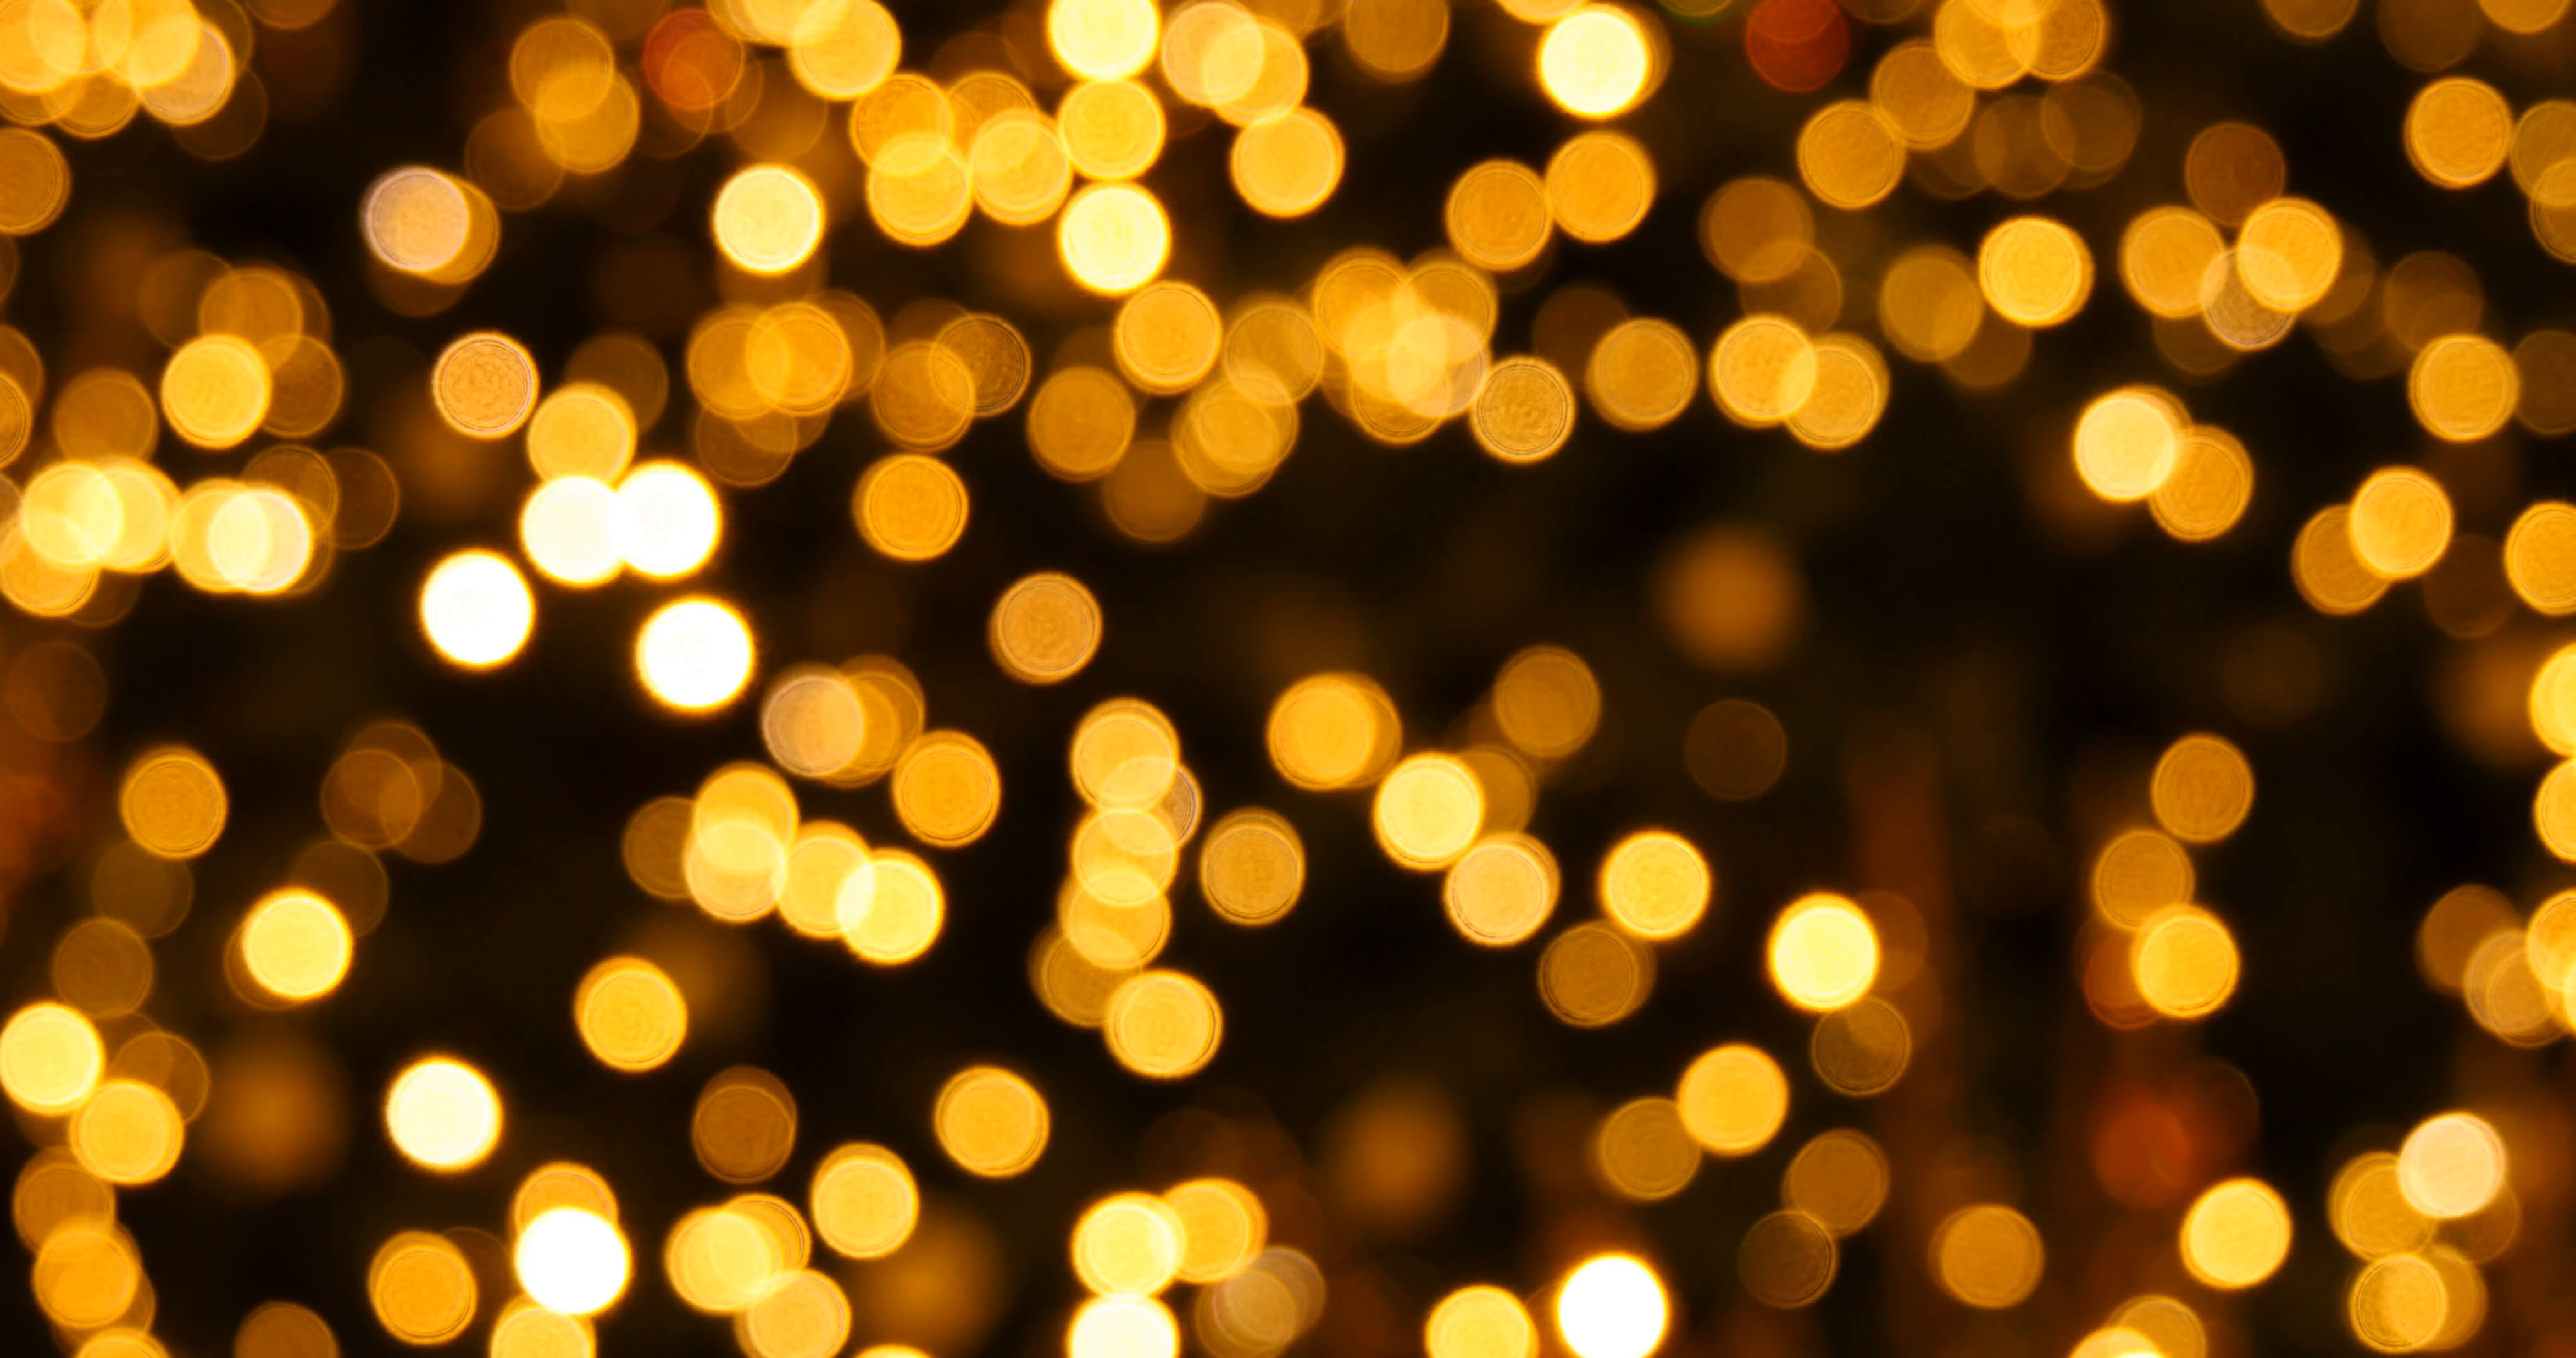 Yellow Bokeh Lights Christmas Background Stock Video Footage - VideoBlocks - Bokeh PNG